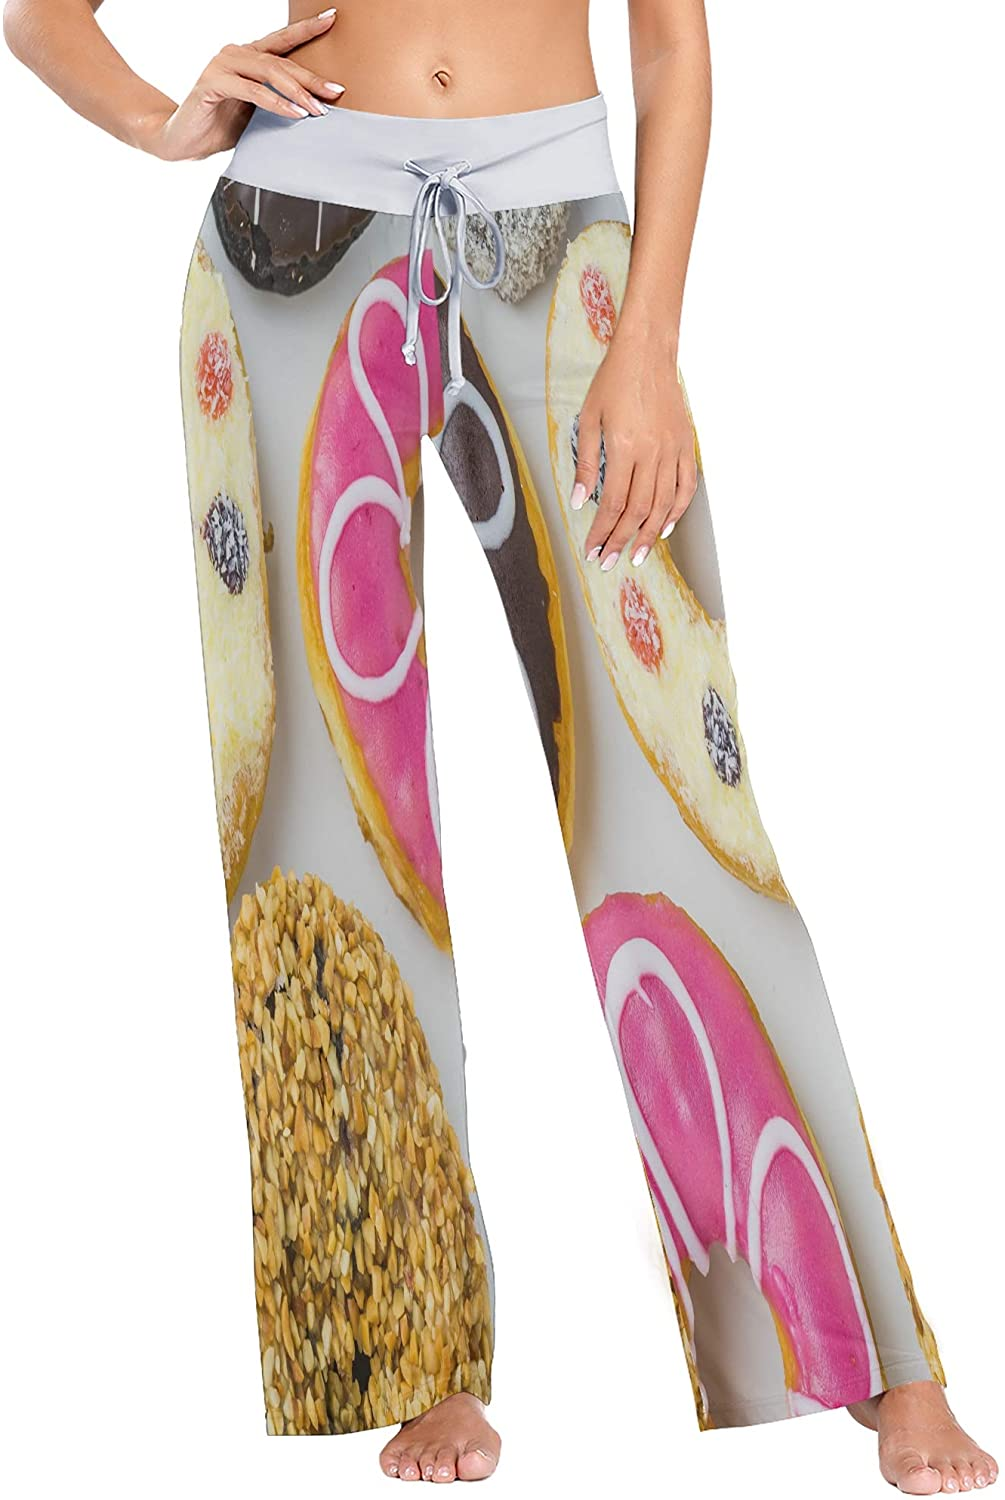 Womens Pajama Lounge Pants Fantastic Donuts Wide Leg Casual Palazzo Pj Sleep Pants Girls